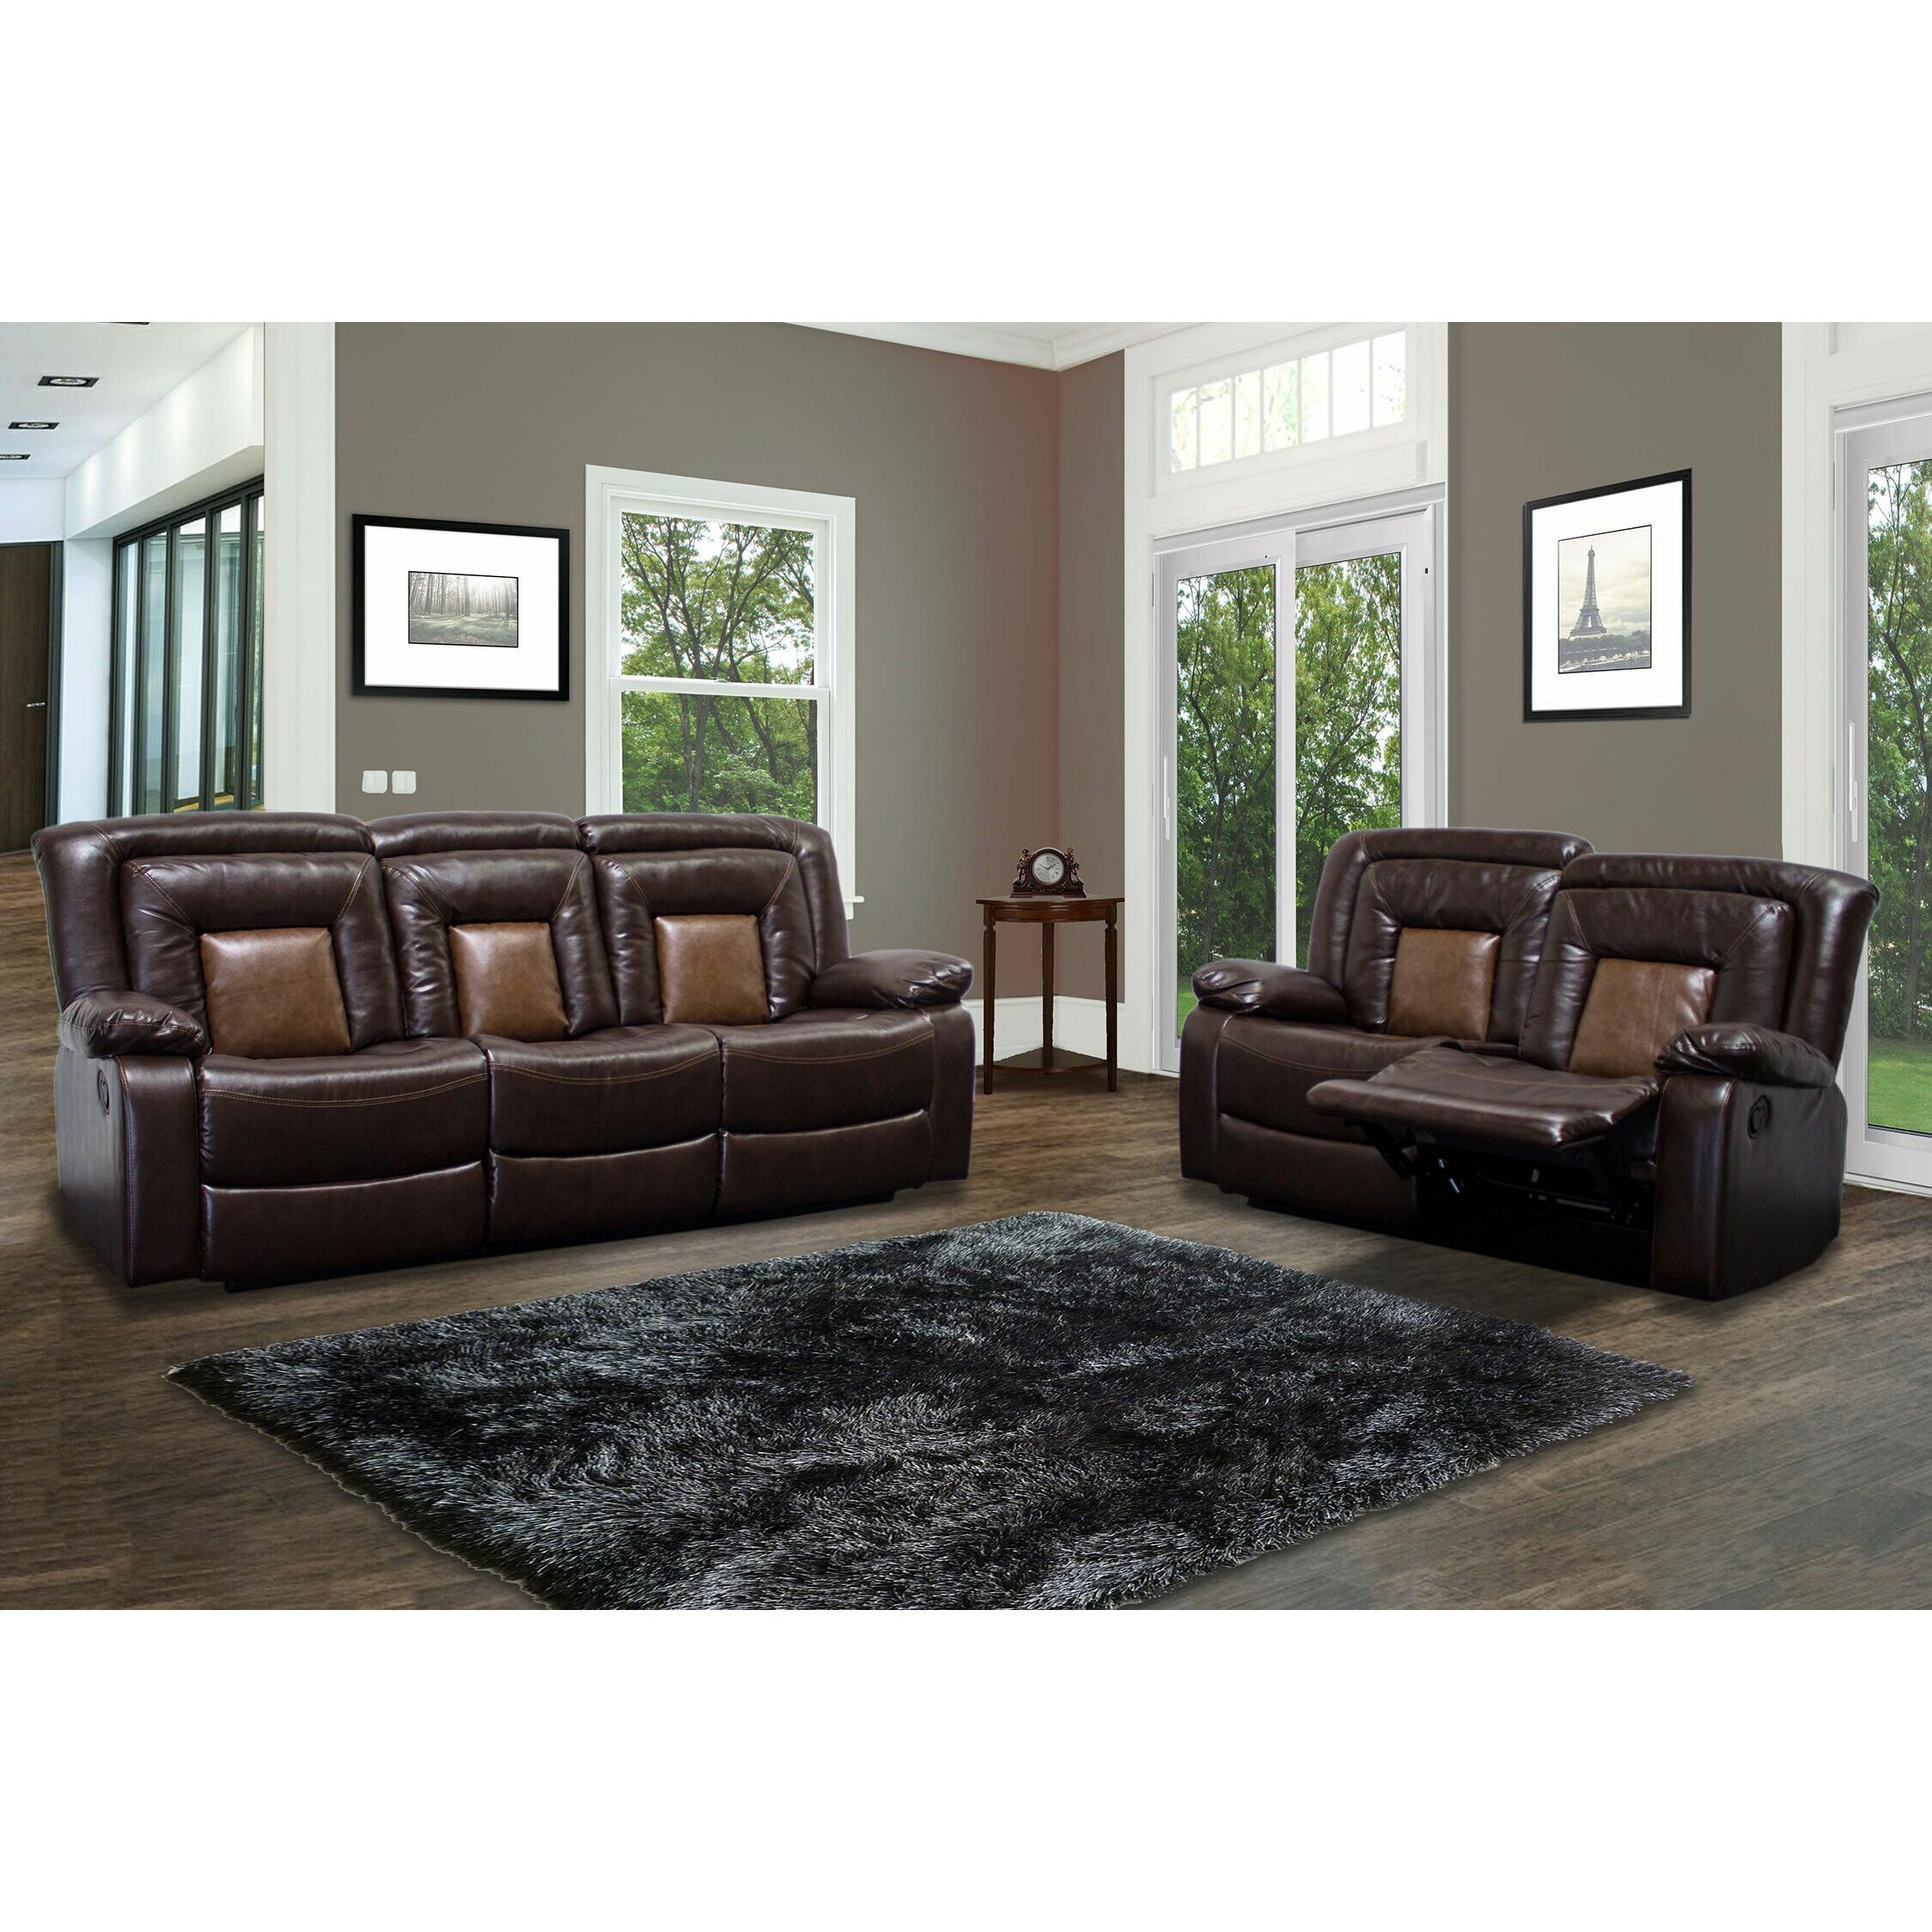 Leather Living Room Sets On Leather Living Room Sets Youll Love Wayfair